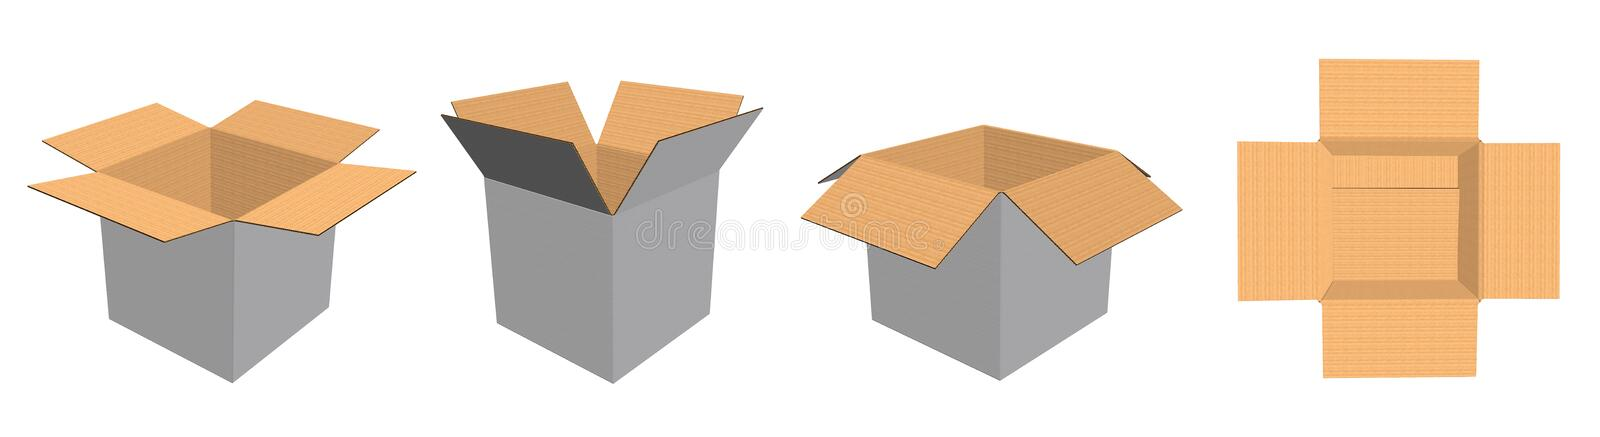 Cardboard open box mock up, clear, blank, isolated on white background with perspective presentation. 3D illustration royalty free illustration